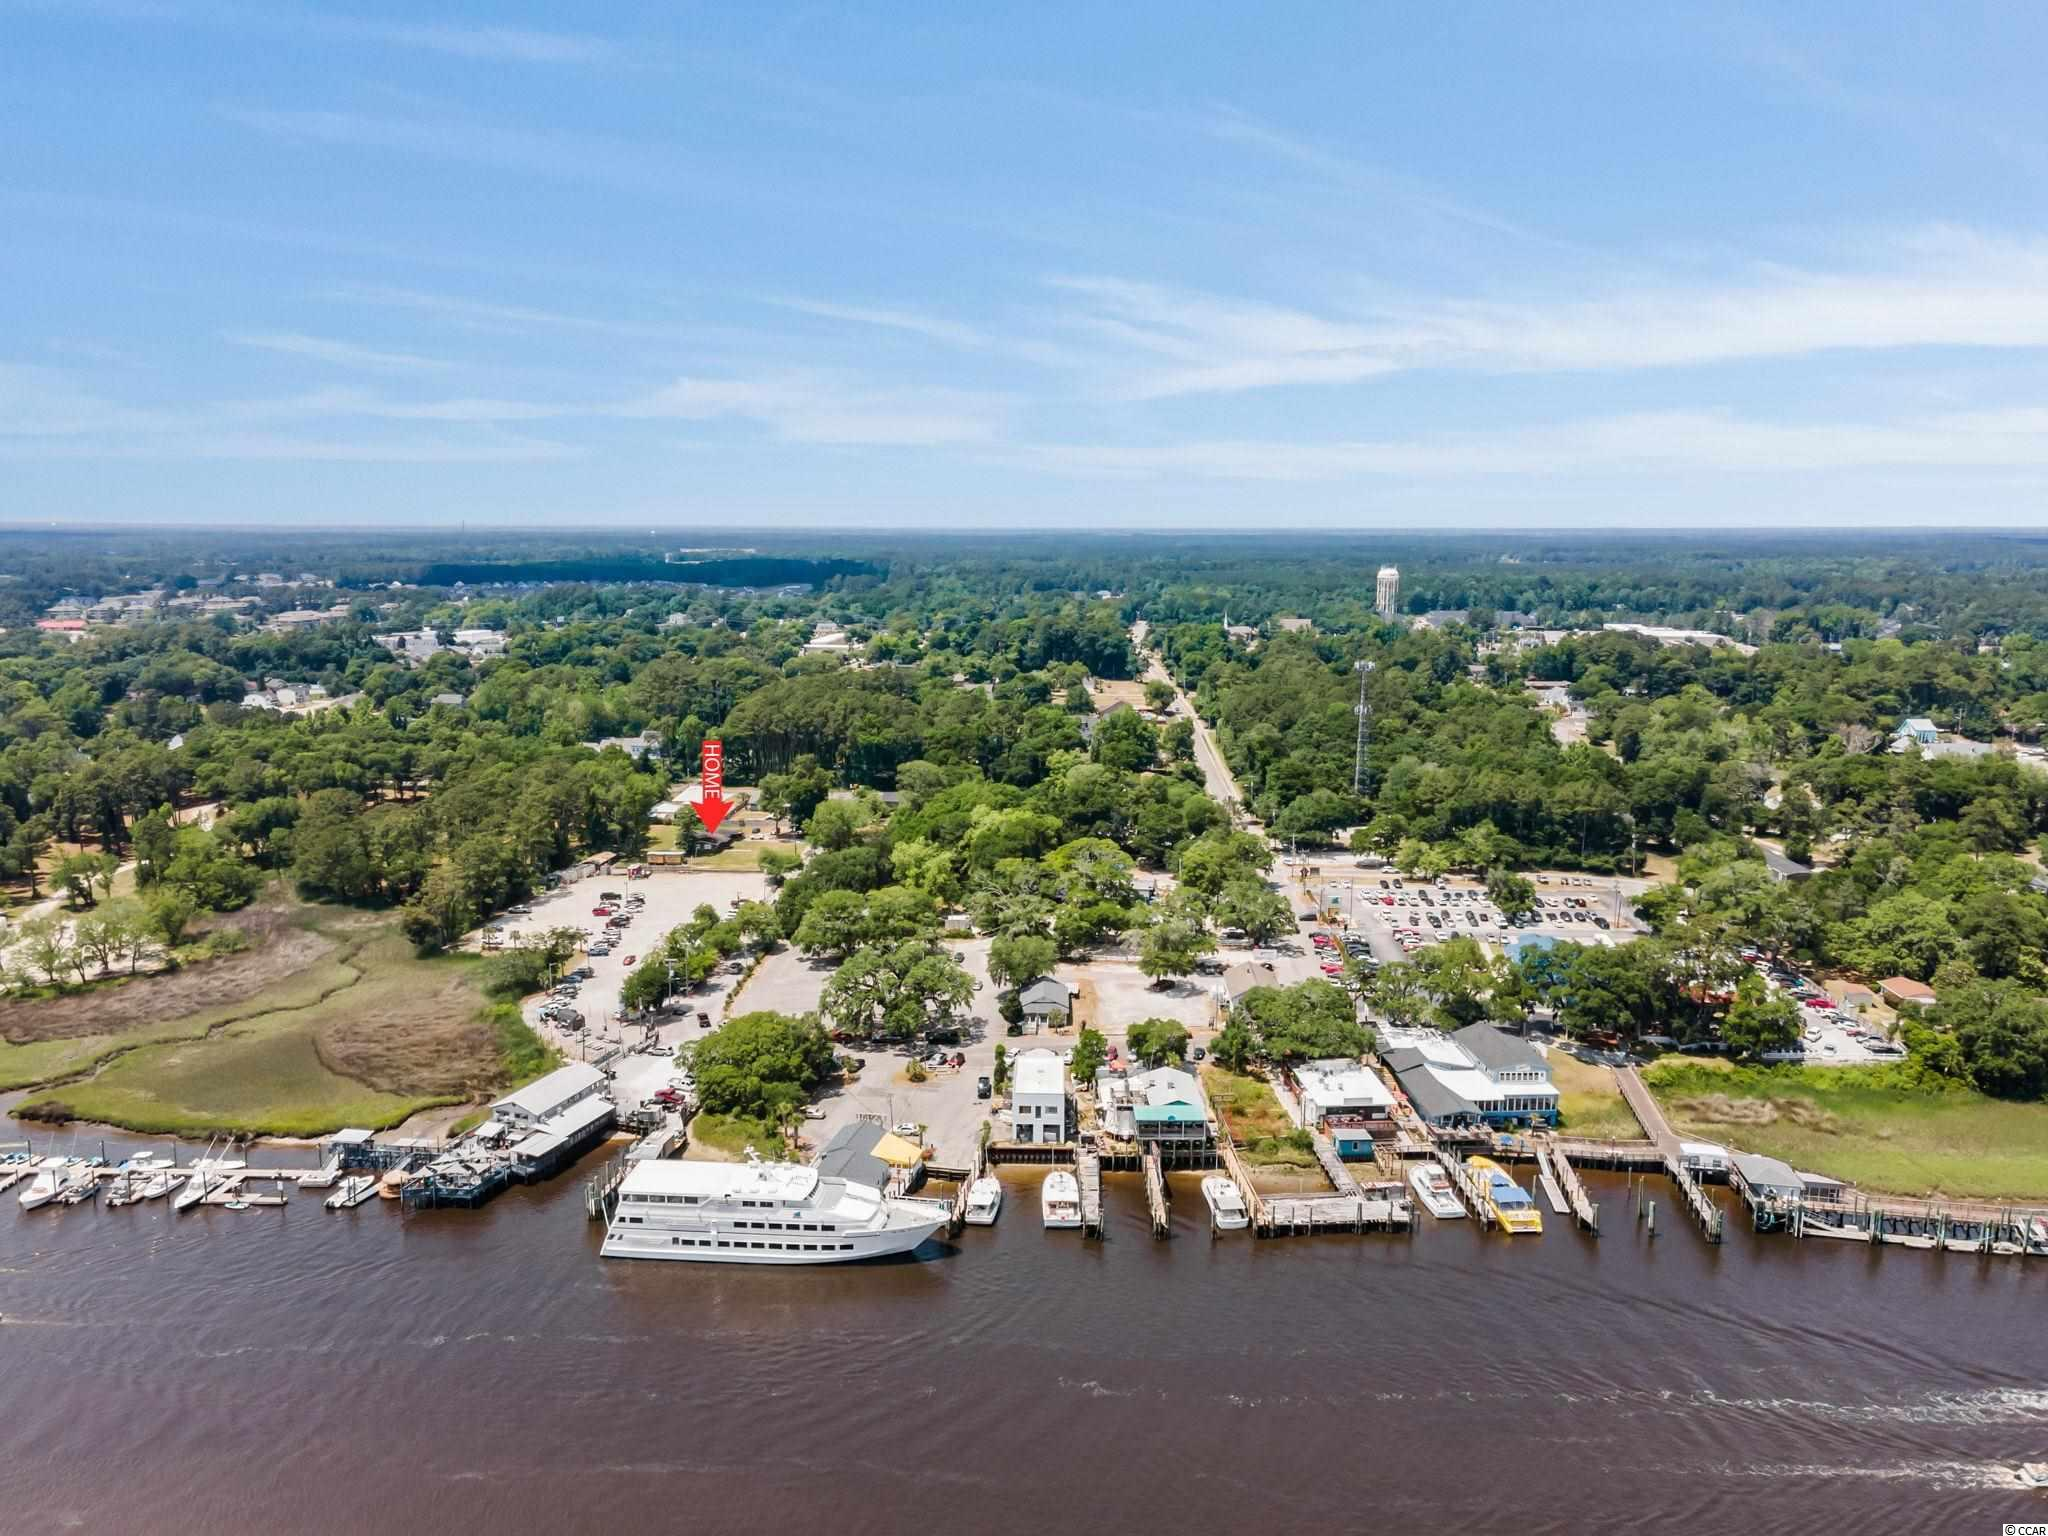 This is an incredible rare opportunity to own 3 lots close to the Intercoastal Waterway. Walking distance to The Big M Casino Boat and some of the best seafood in town makes this location unbeatable. The property is zoned PDD, so let you imagination run wild on the possibilities. Every May, this street host the Words Famous Crab Festival. Own a slice of paradise filled with opportunities. Just minutes from the heart of Myrtle Beach, and a short distance from the North Carolina line lets you have the best of both worlds.